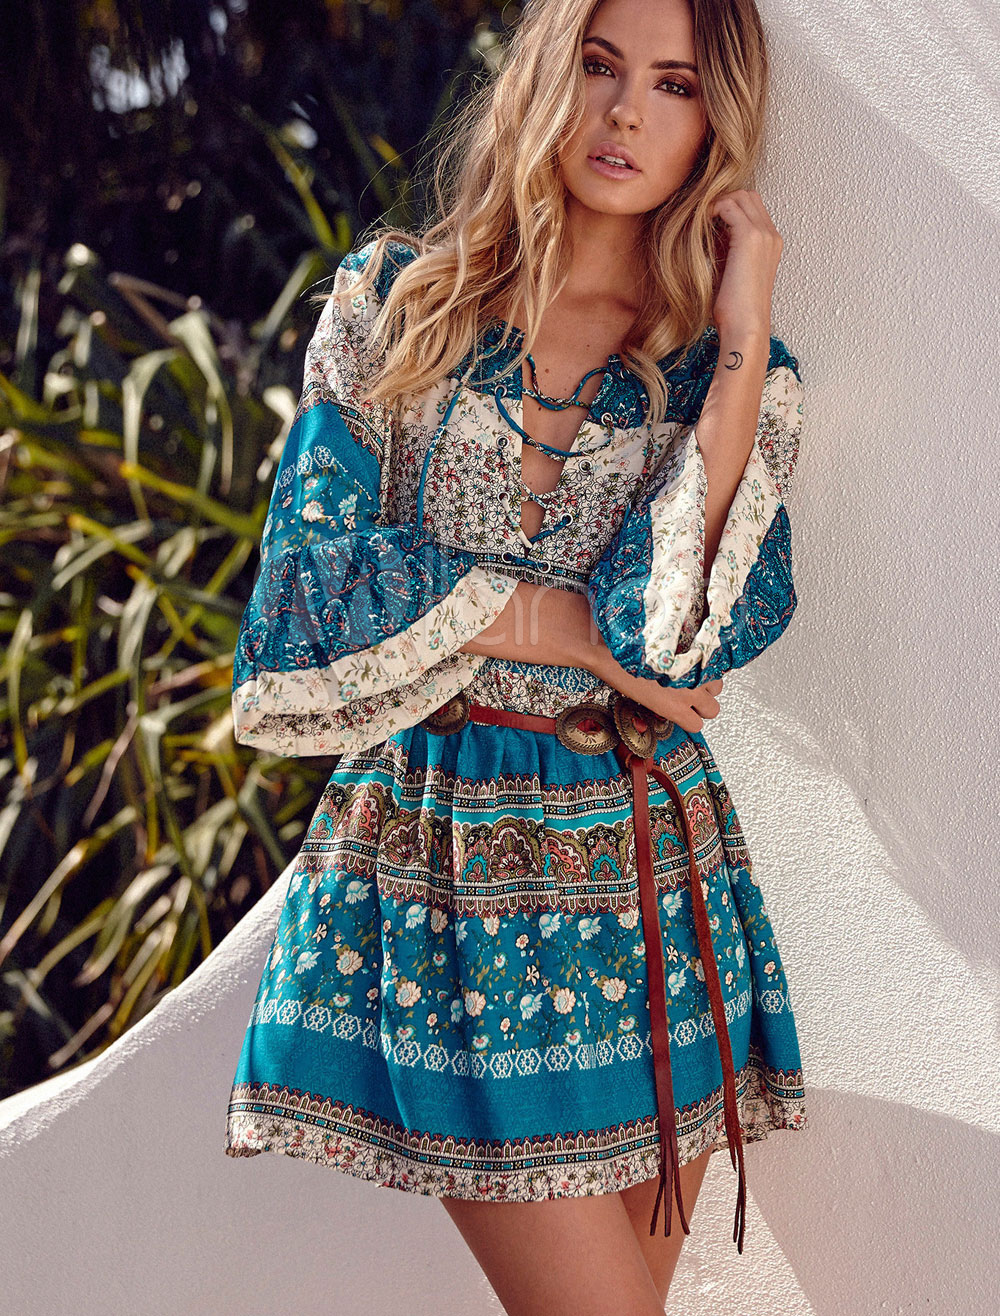 Boho Short Dress Green Round Neck 3/4 Length Bell Sleeve Lace Up Printed A Line Cotton Dress